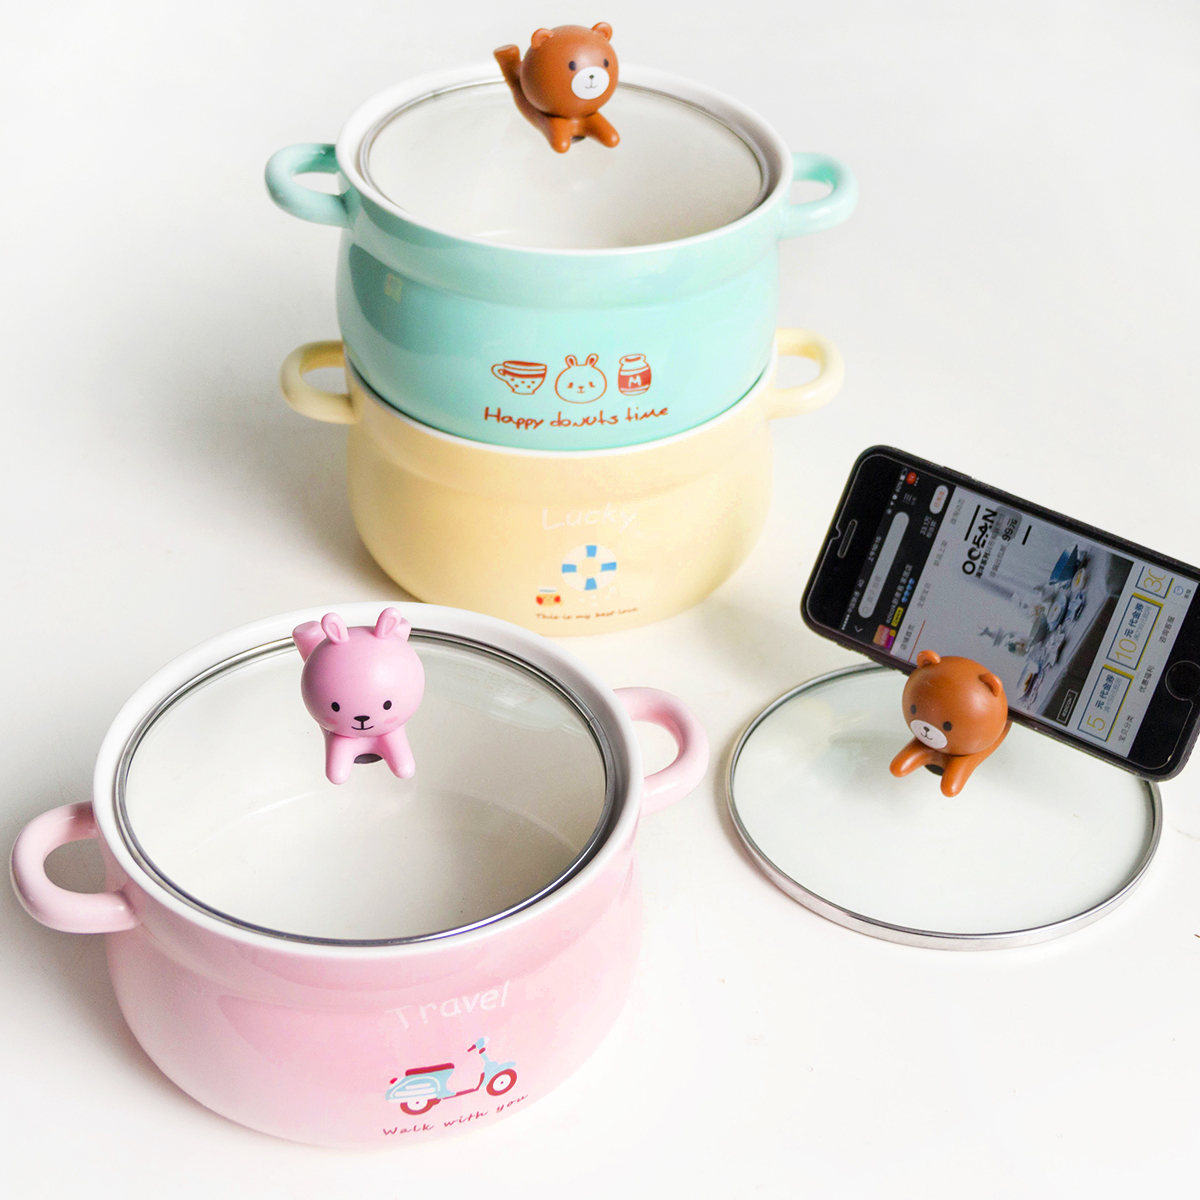 Ezicok cute Korean students creative tableware bowl with cover bowl box lunch box with ceramic ears  sc 1 st  EnglishTaobao.net & USD 21.57] Ezicok cute Korean students creative tableware bowl ... Aboutintivar.Com